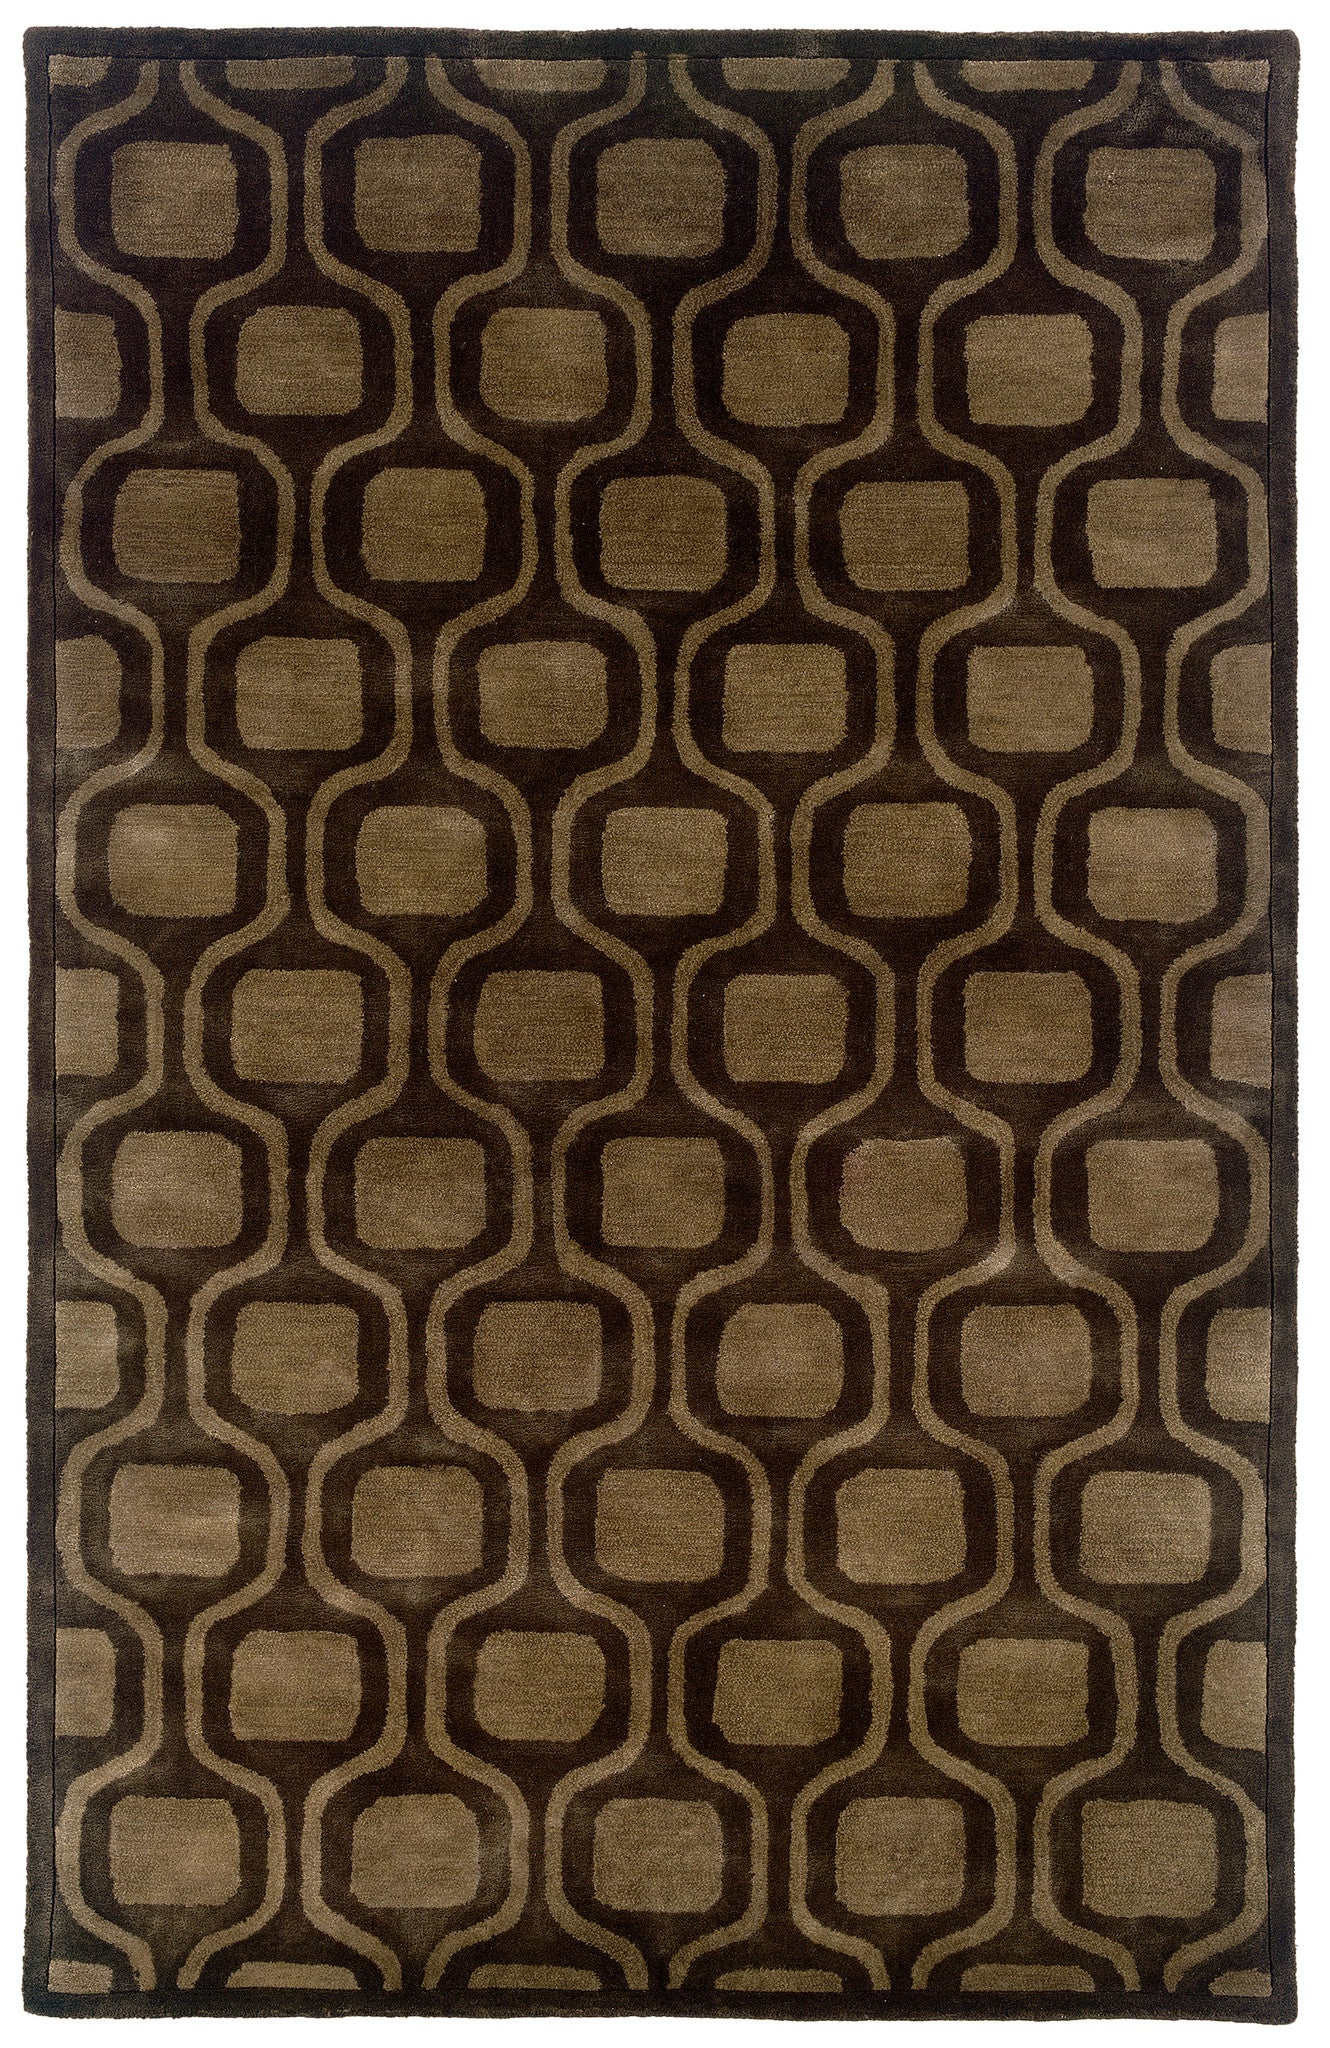 LR Resources Majestic 09303 Charcoal Area Rug